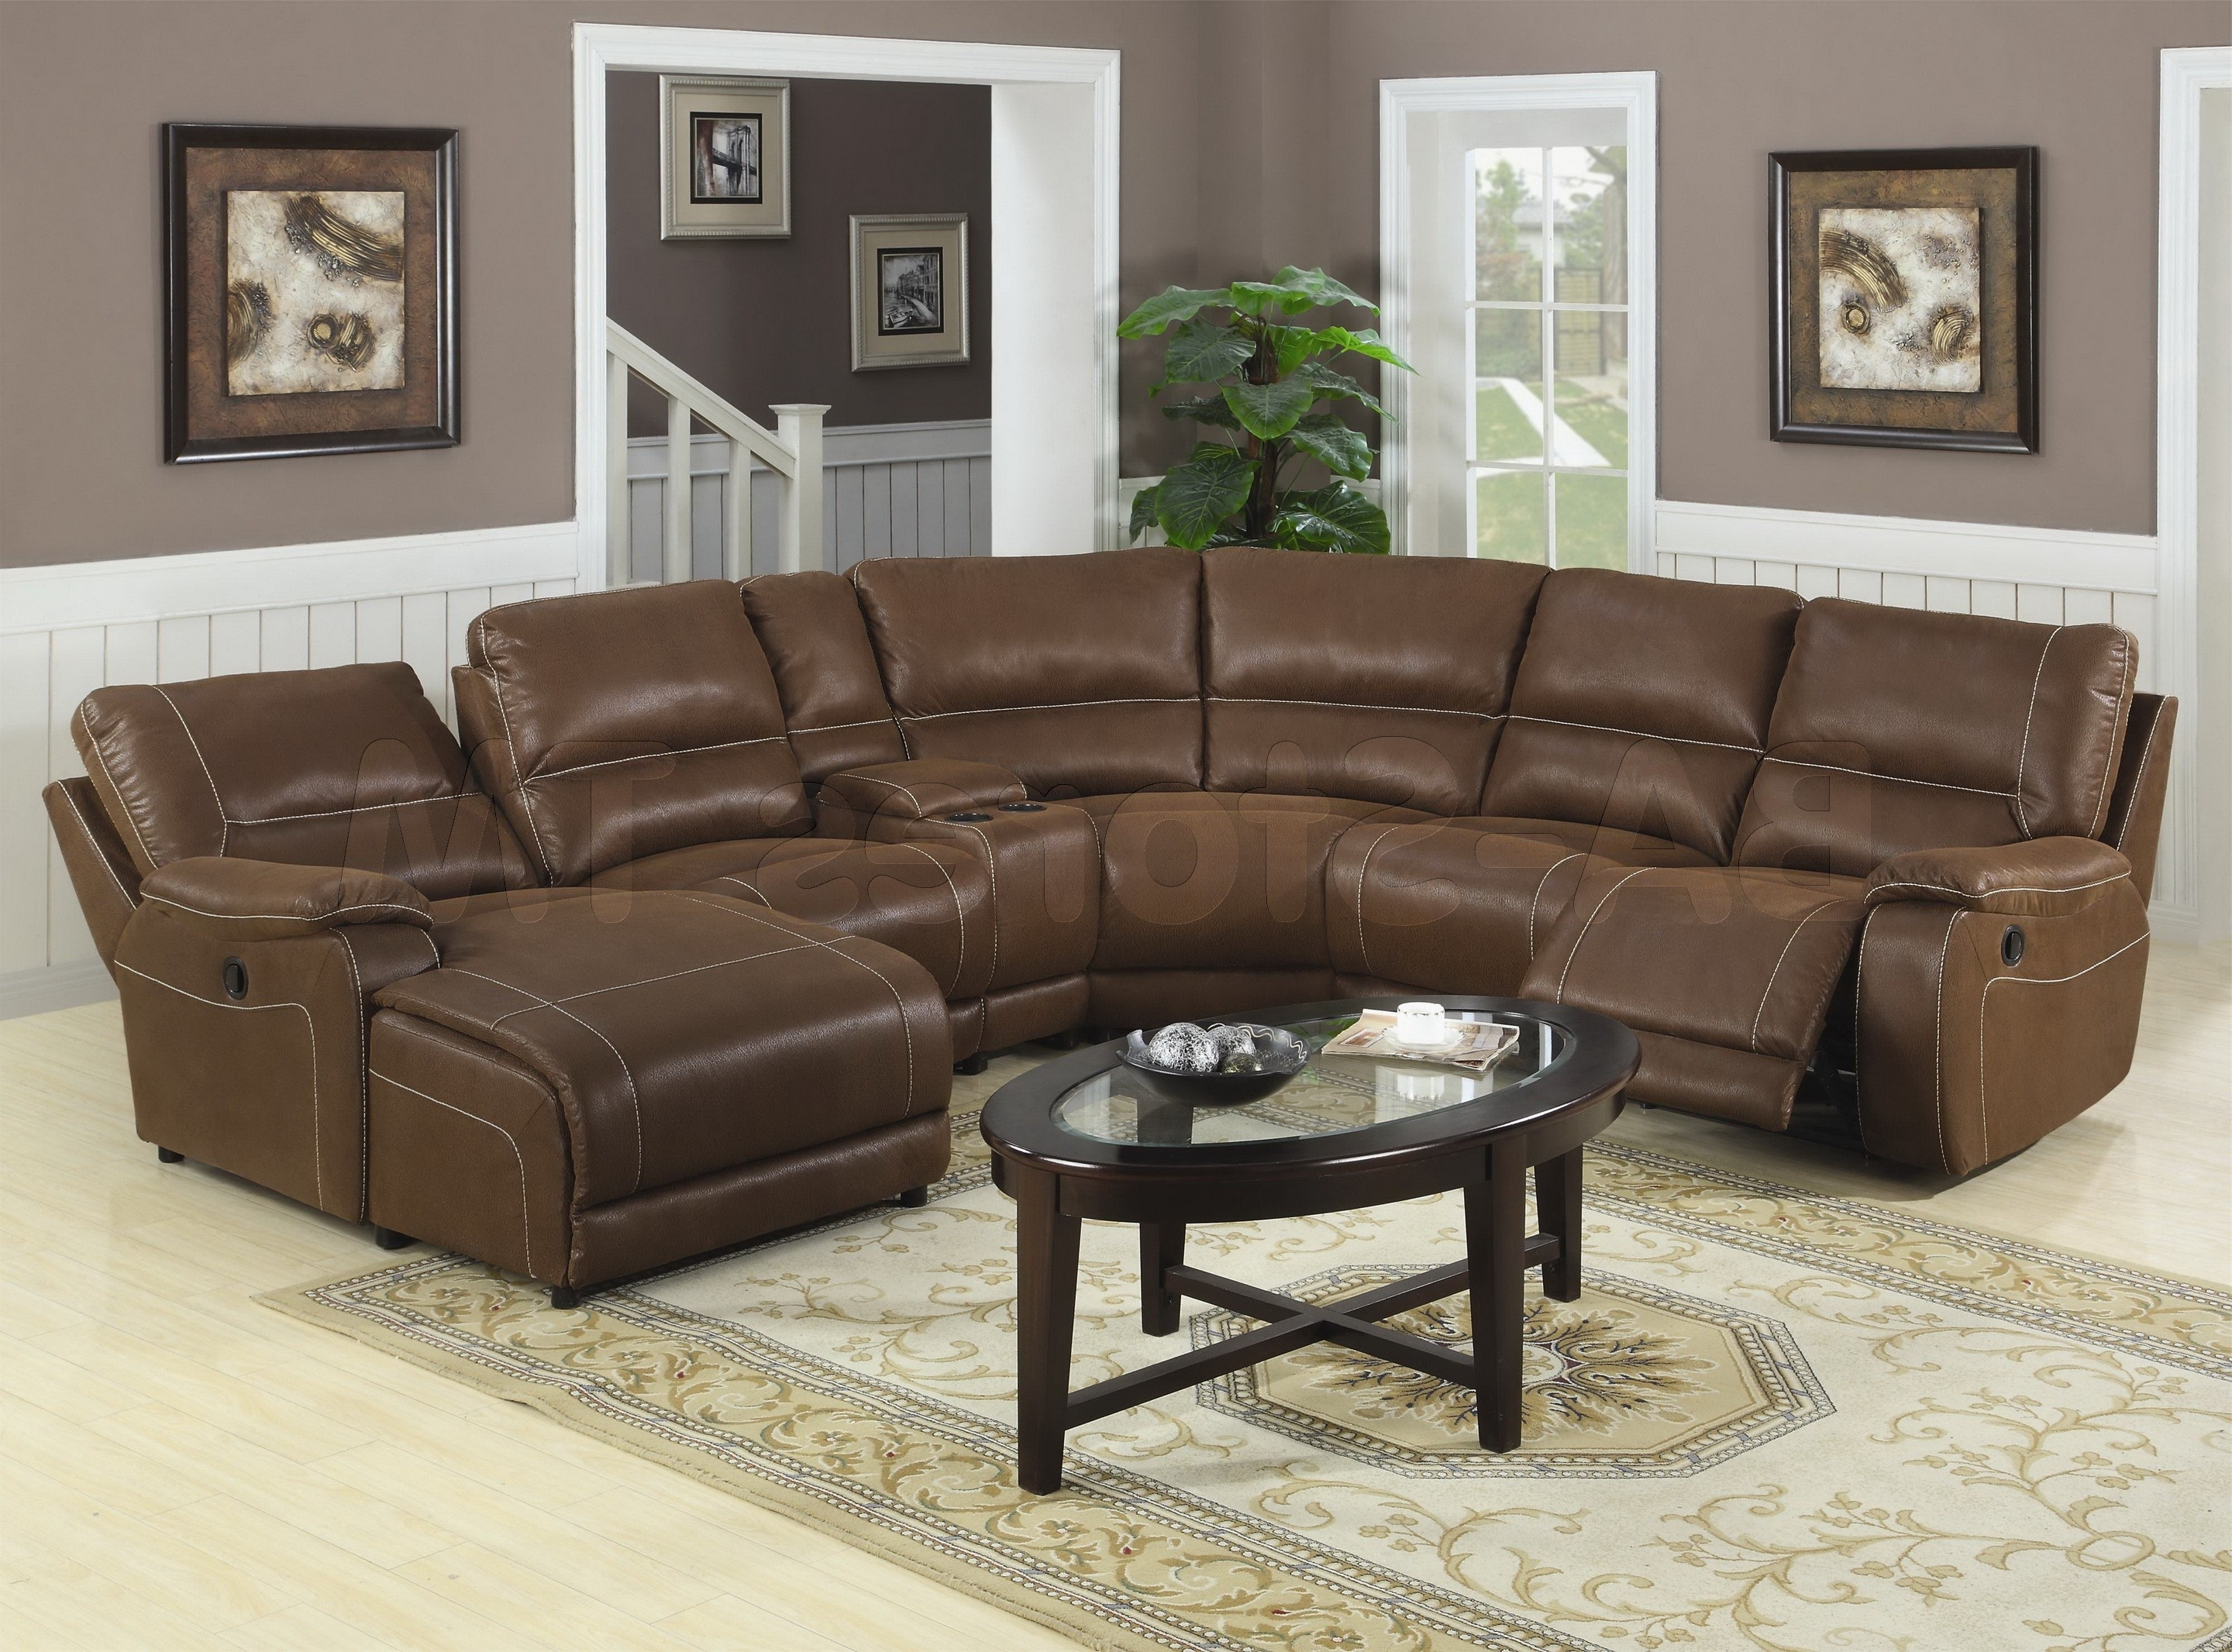 Fashionable Living Room : Living Room Furniture Sectional Modern Sofa Brown With Round Sectional Sofas (View 11 of 20)